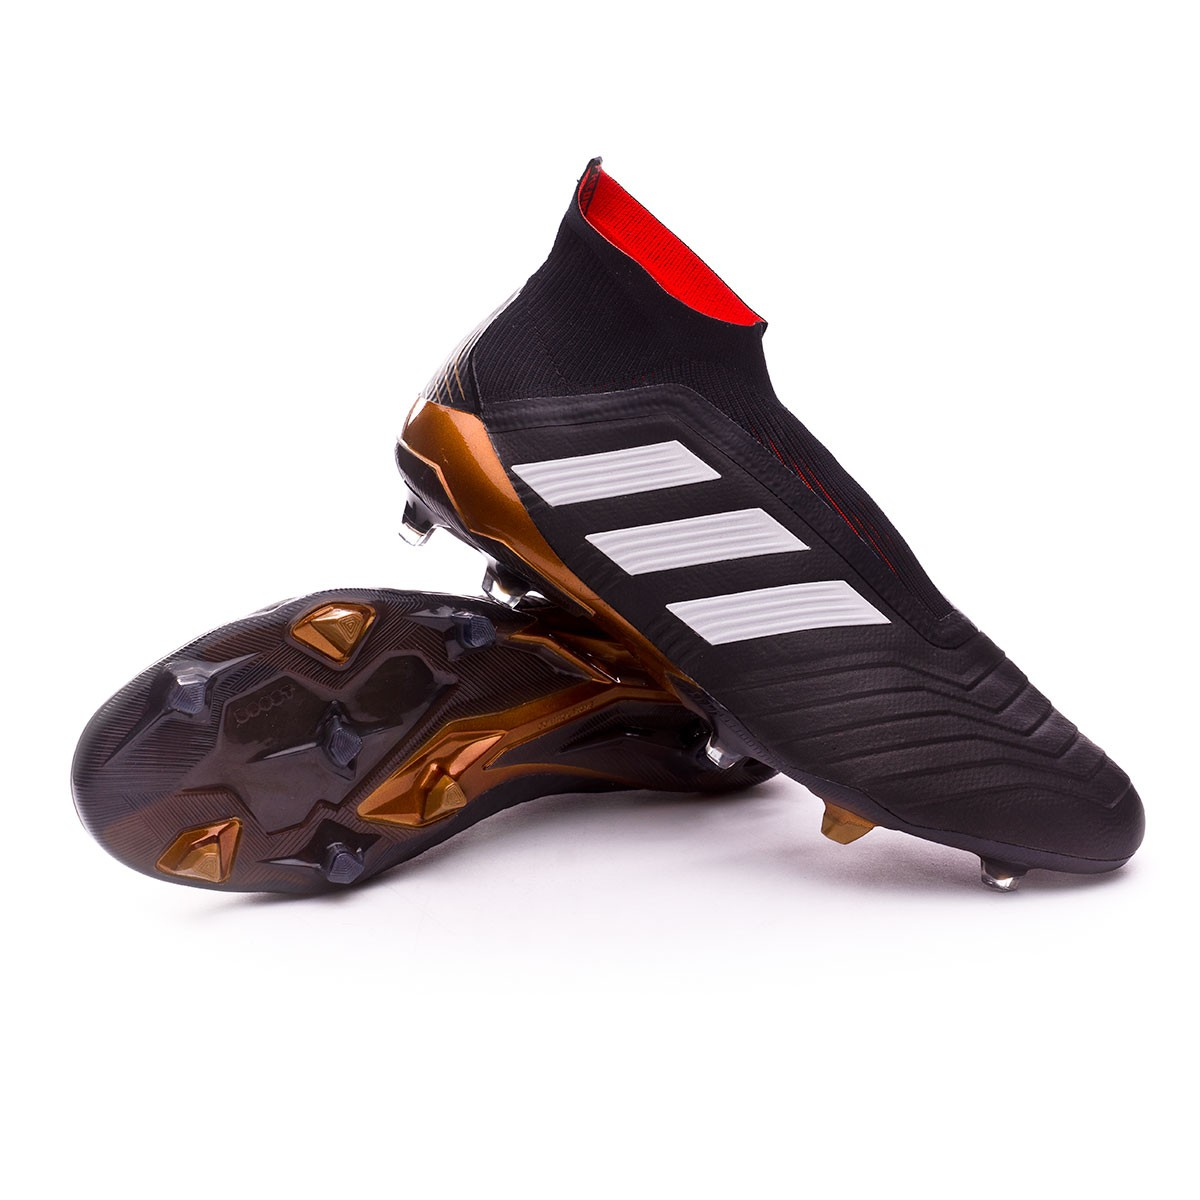 31fec7ca9bc5 Boot adidas Predator 18+ FG Core black-White-Gold metallic-S Buy ...